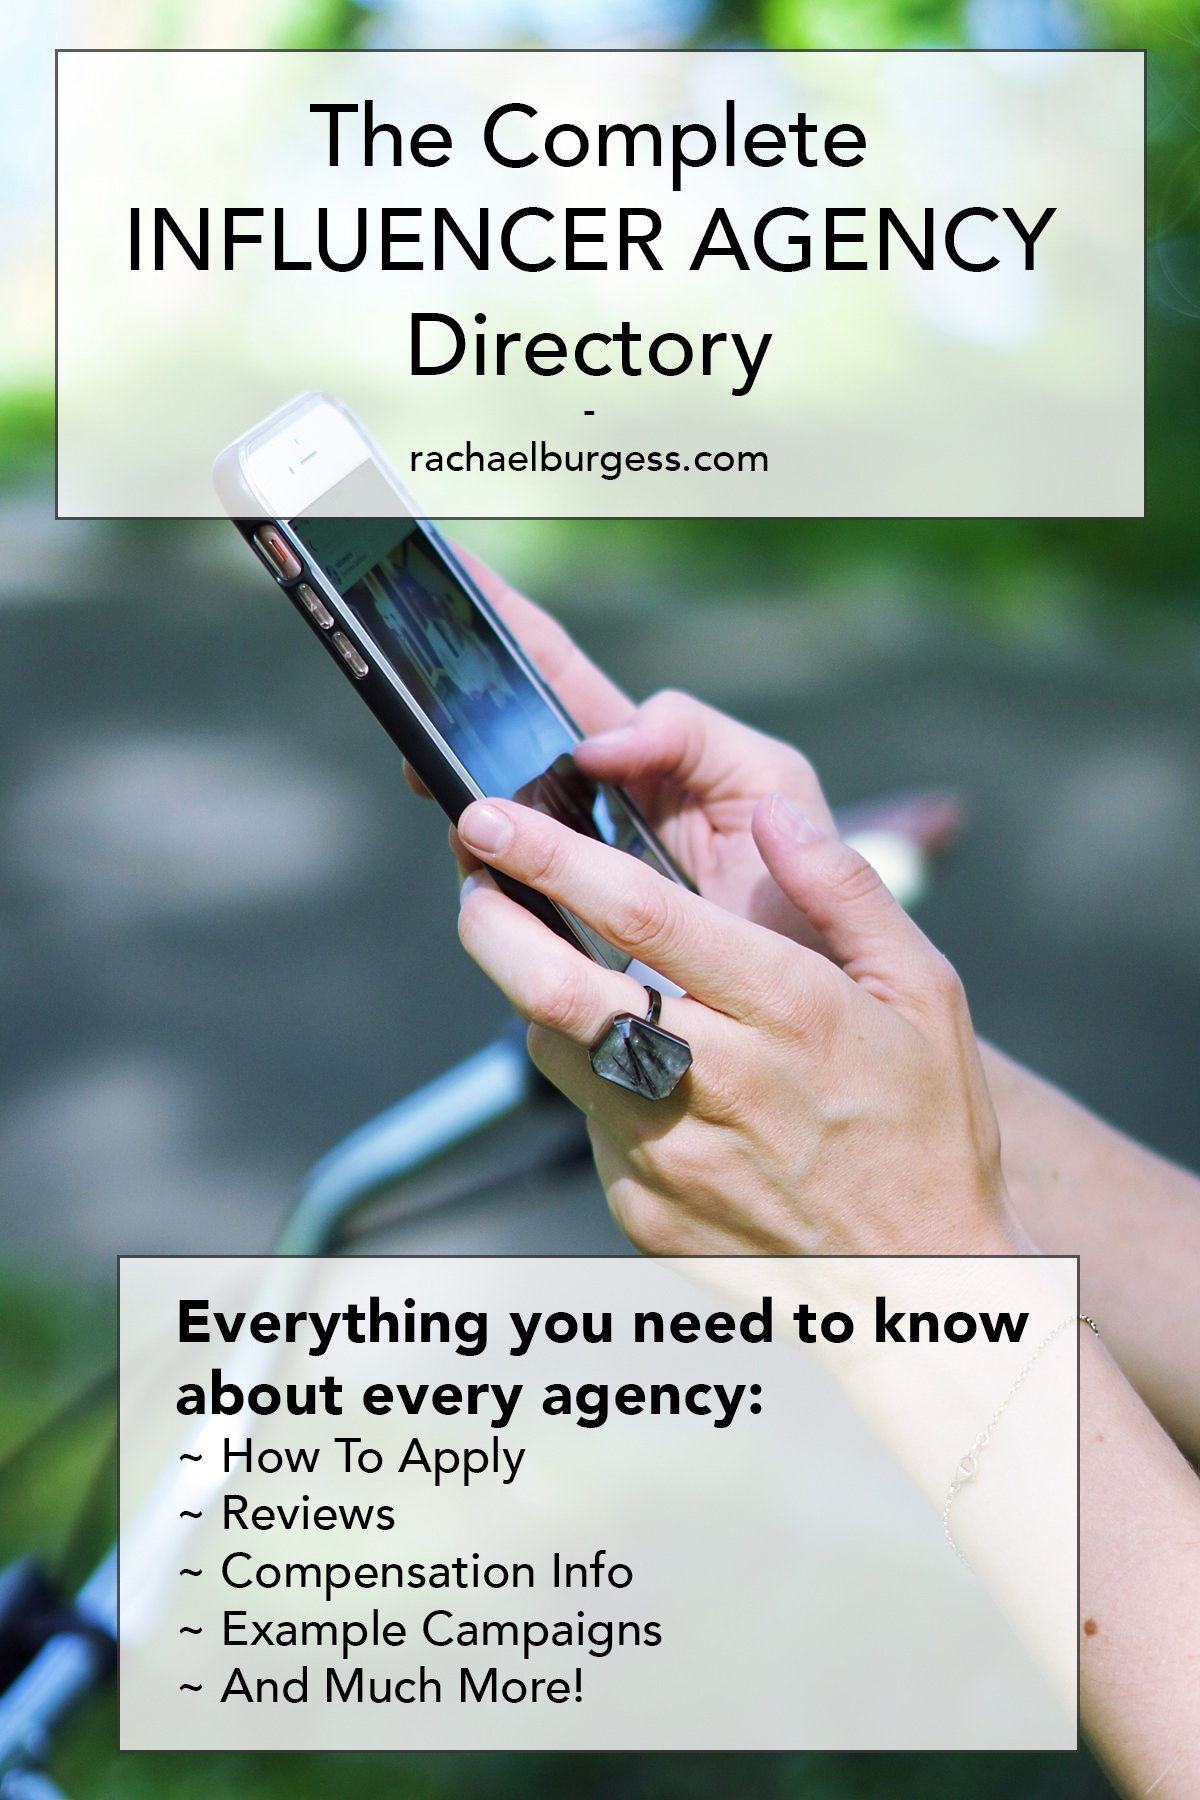 The Complete Influencer Agency Directory by Rachael Burgess